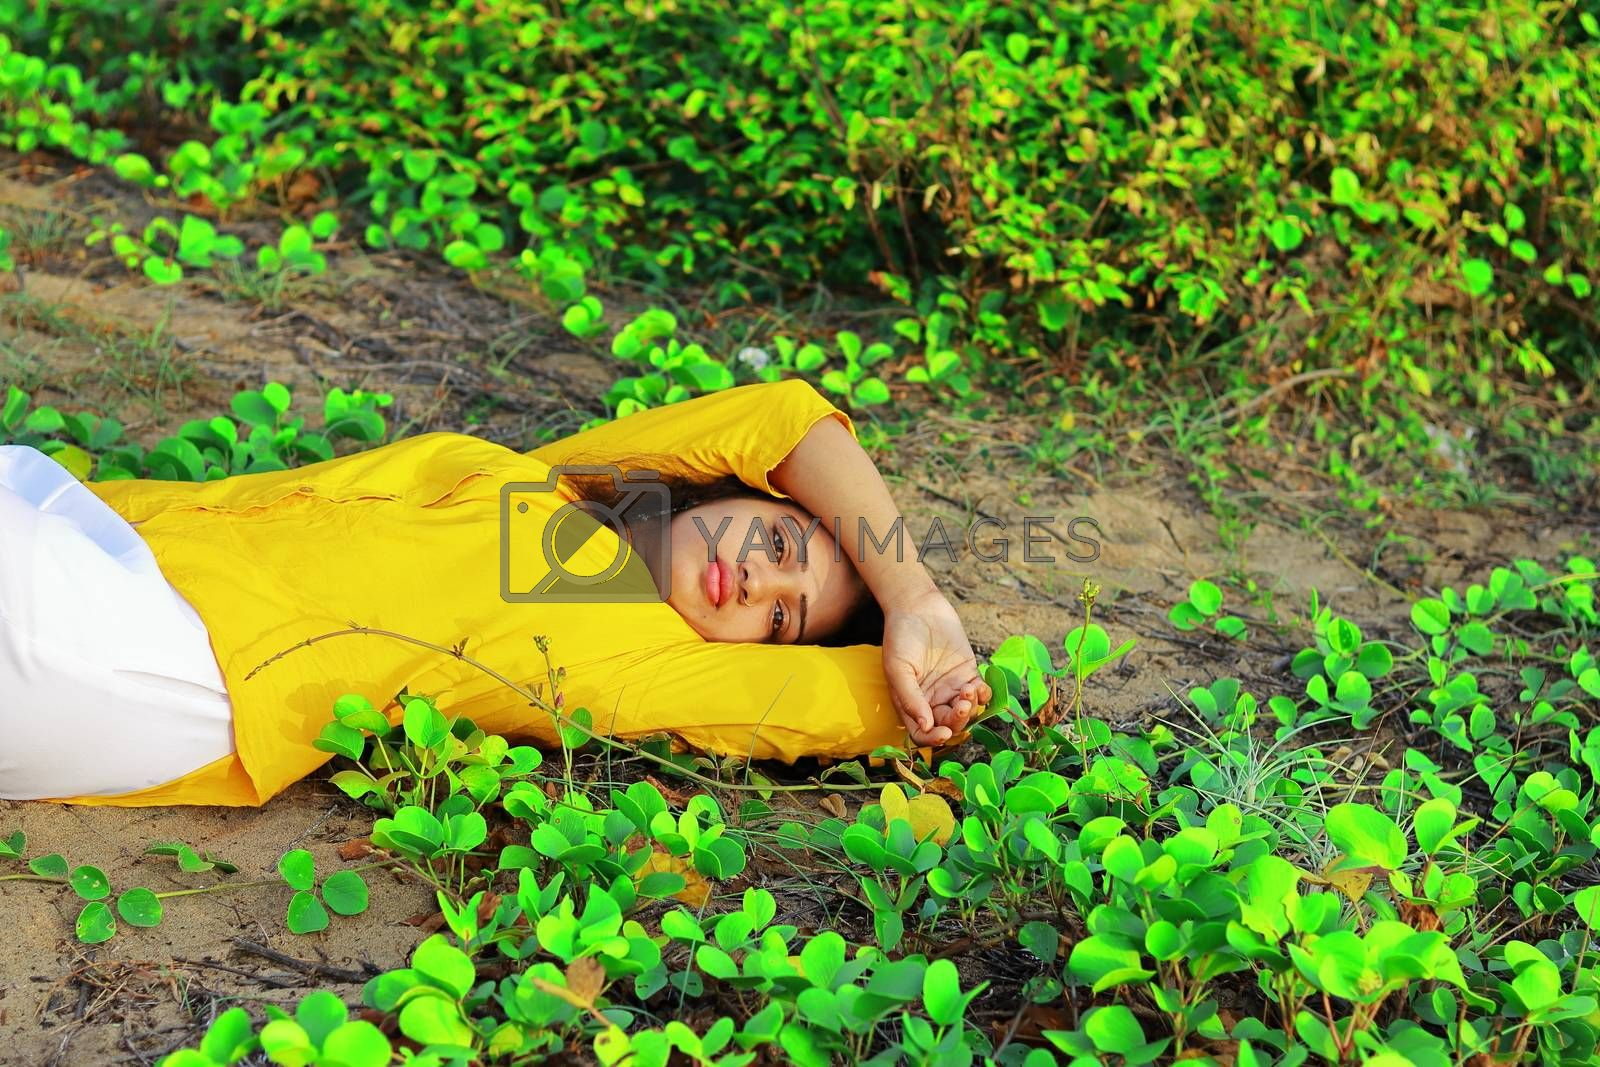 A fashionable young girl lying on the ground among green leaves